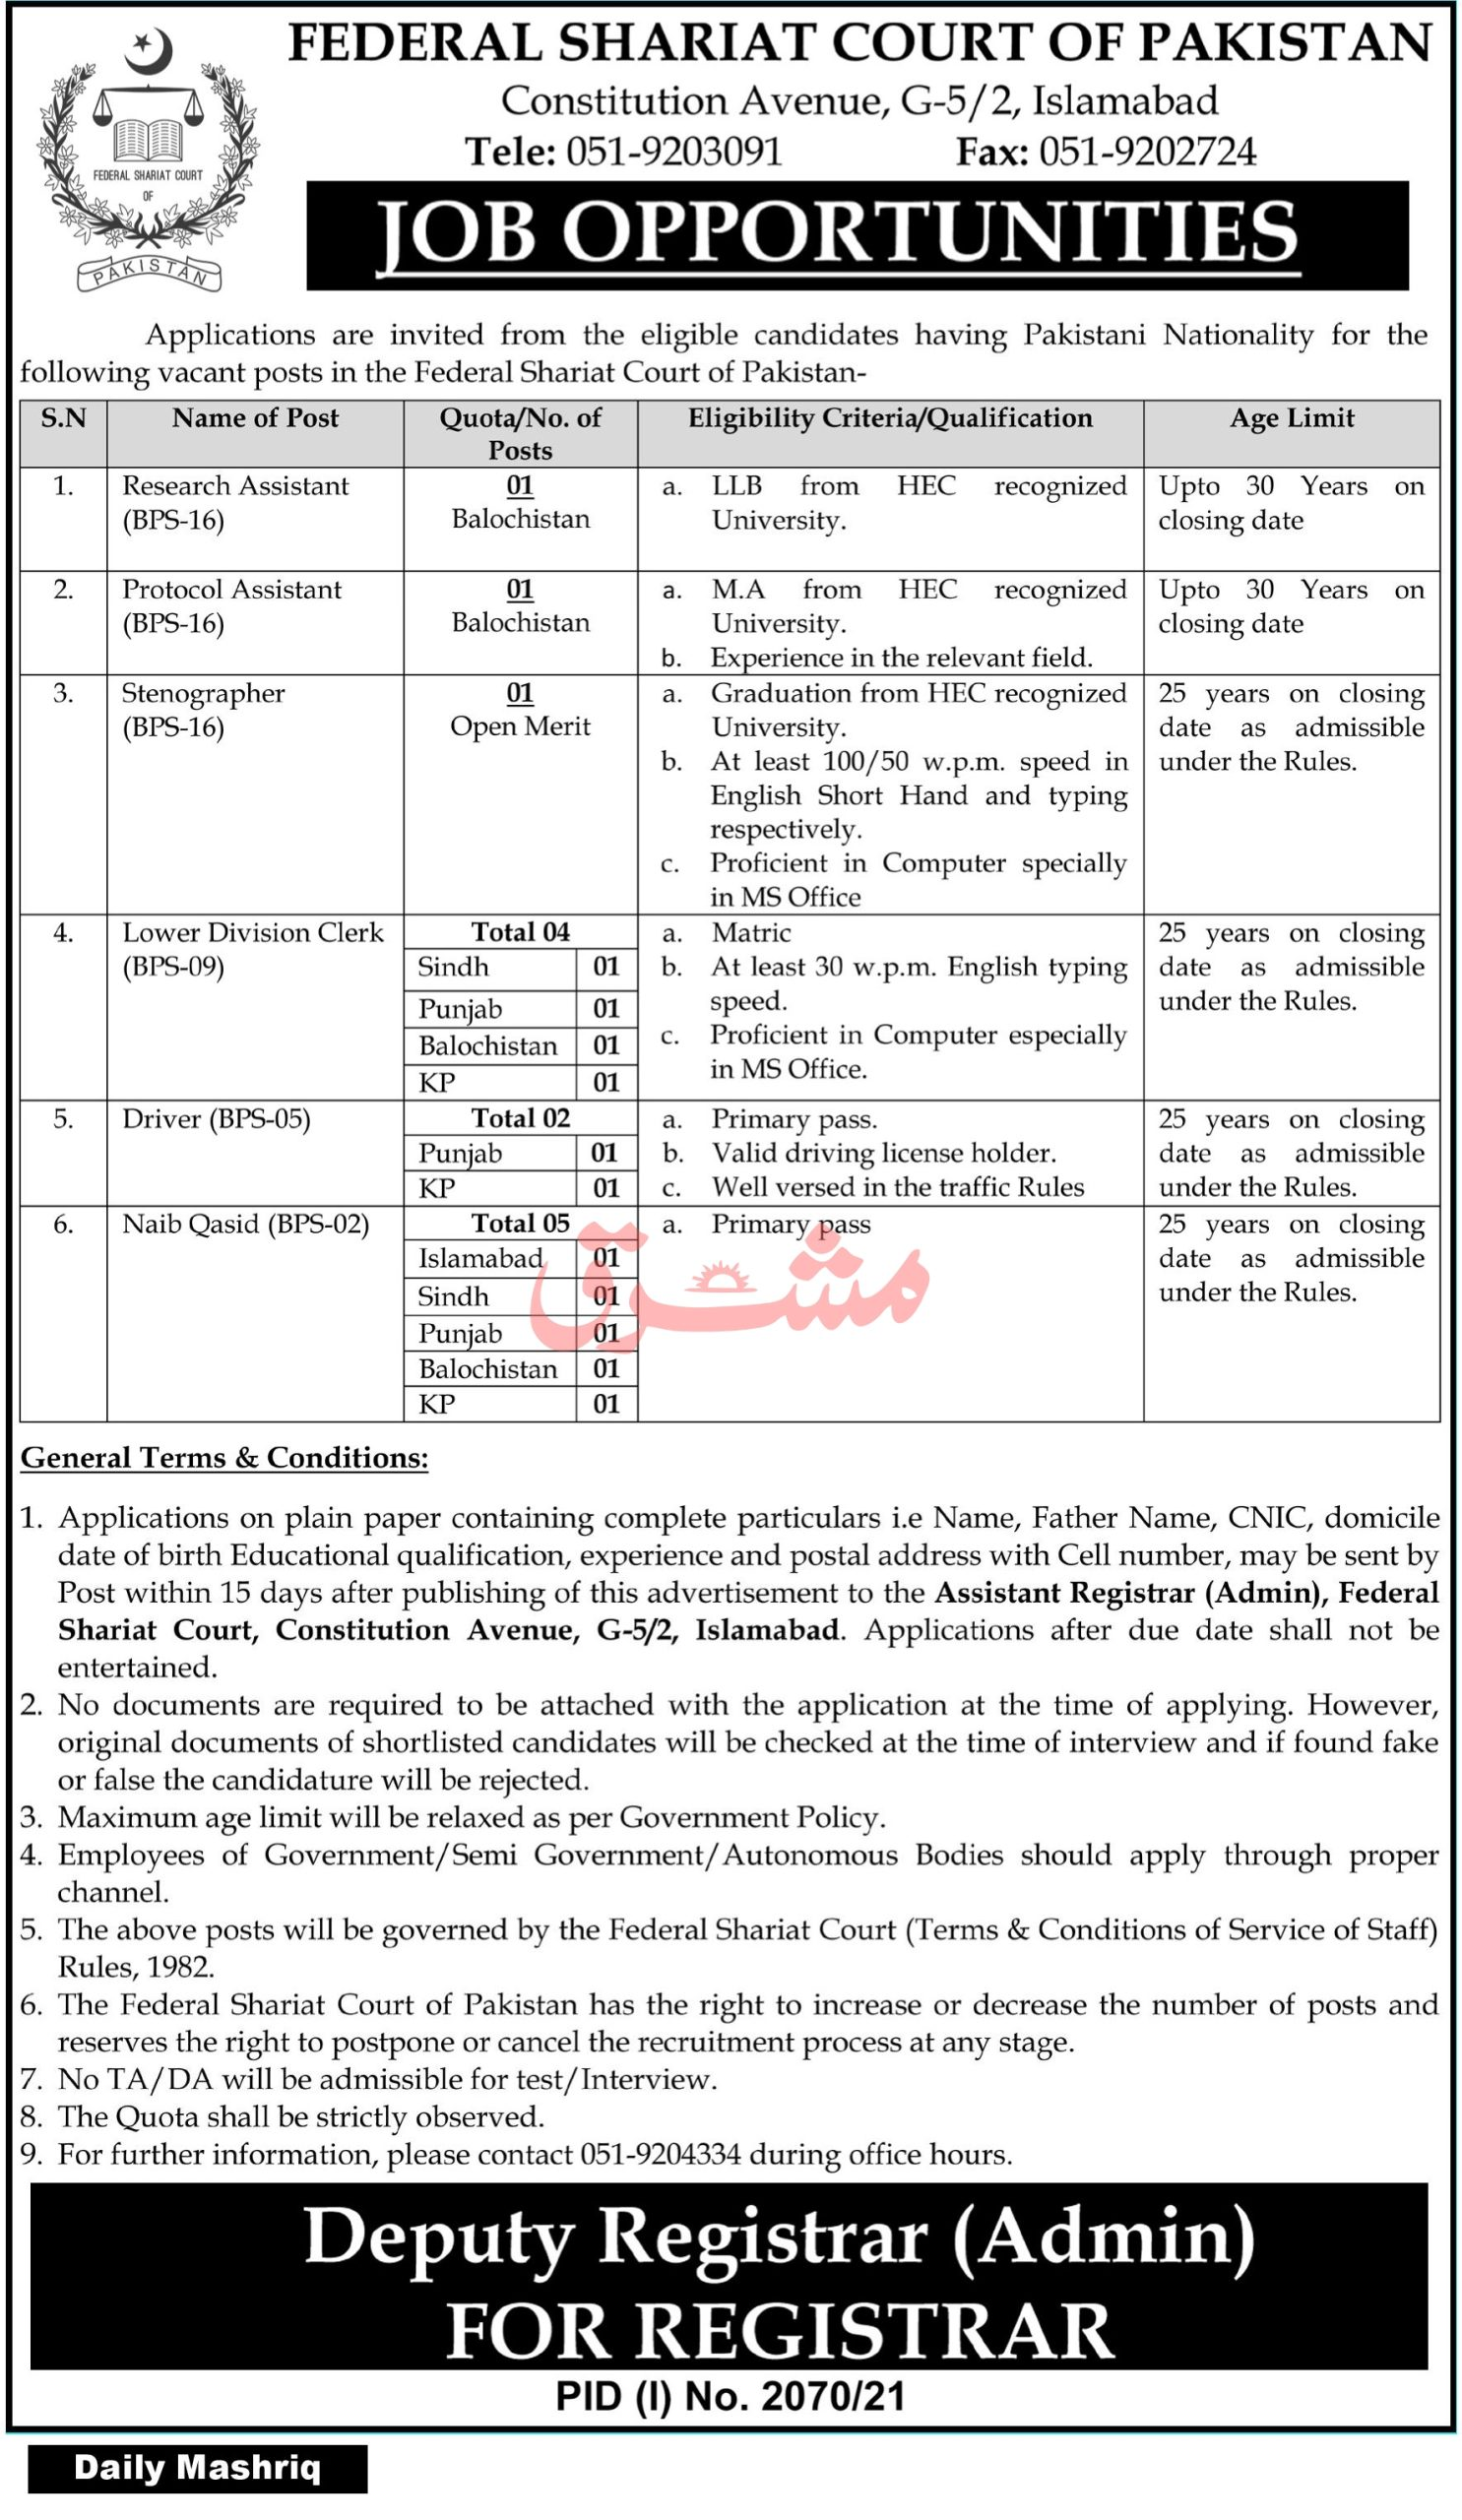 Latest Govt Jobs in Pakistan Today 2021 At Federal Shariat Court